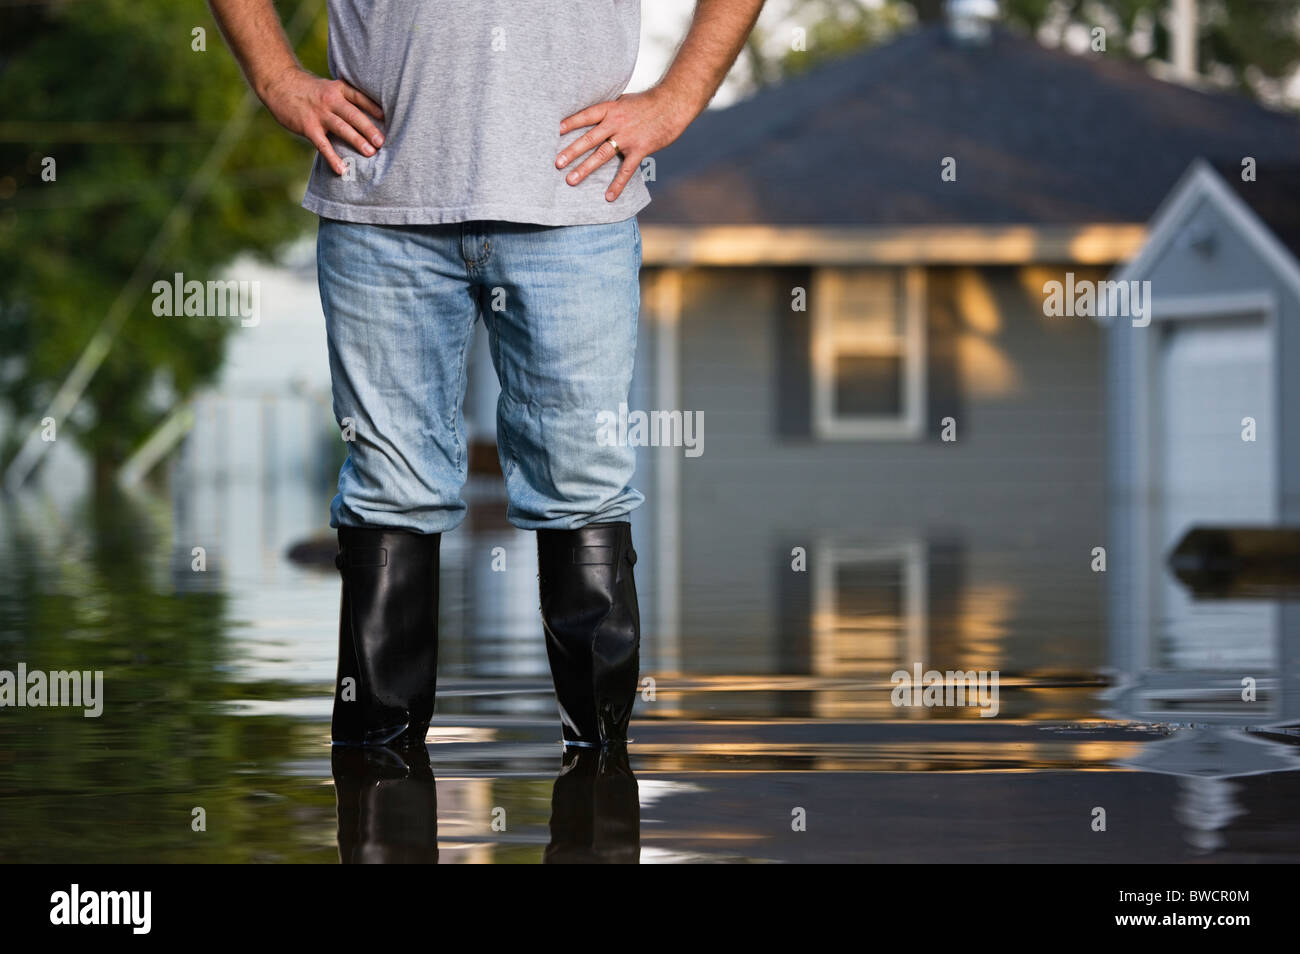 USA, Illinois, Chillicothe, Mid adult man standing in water in rubber boots, Mid section Stock Photo